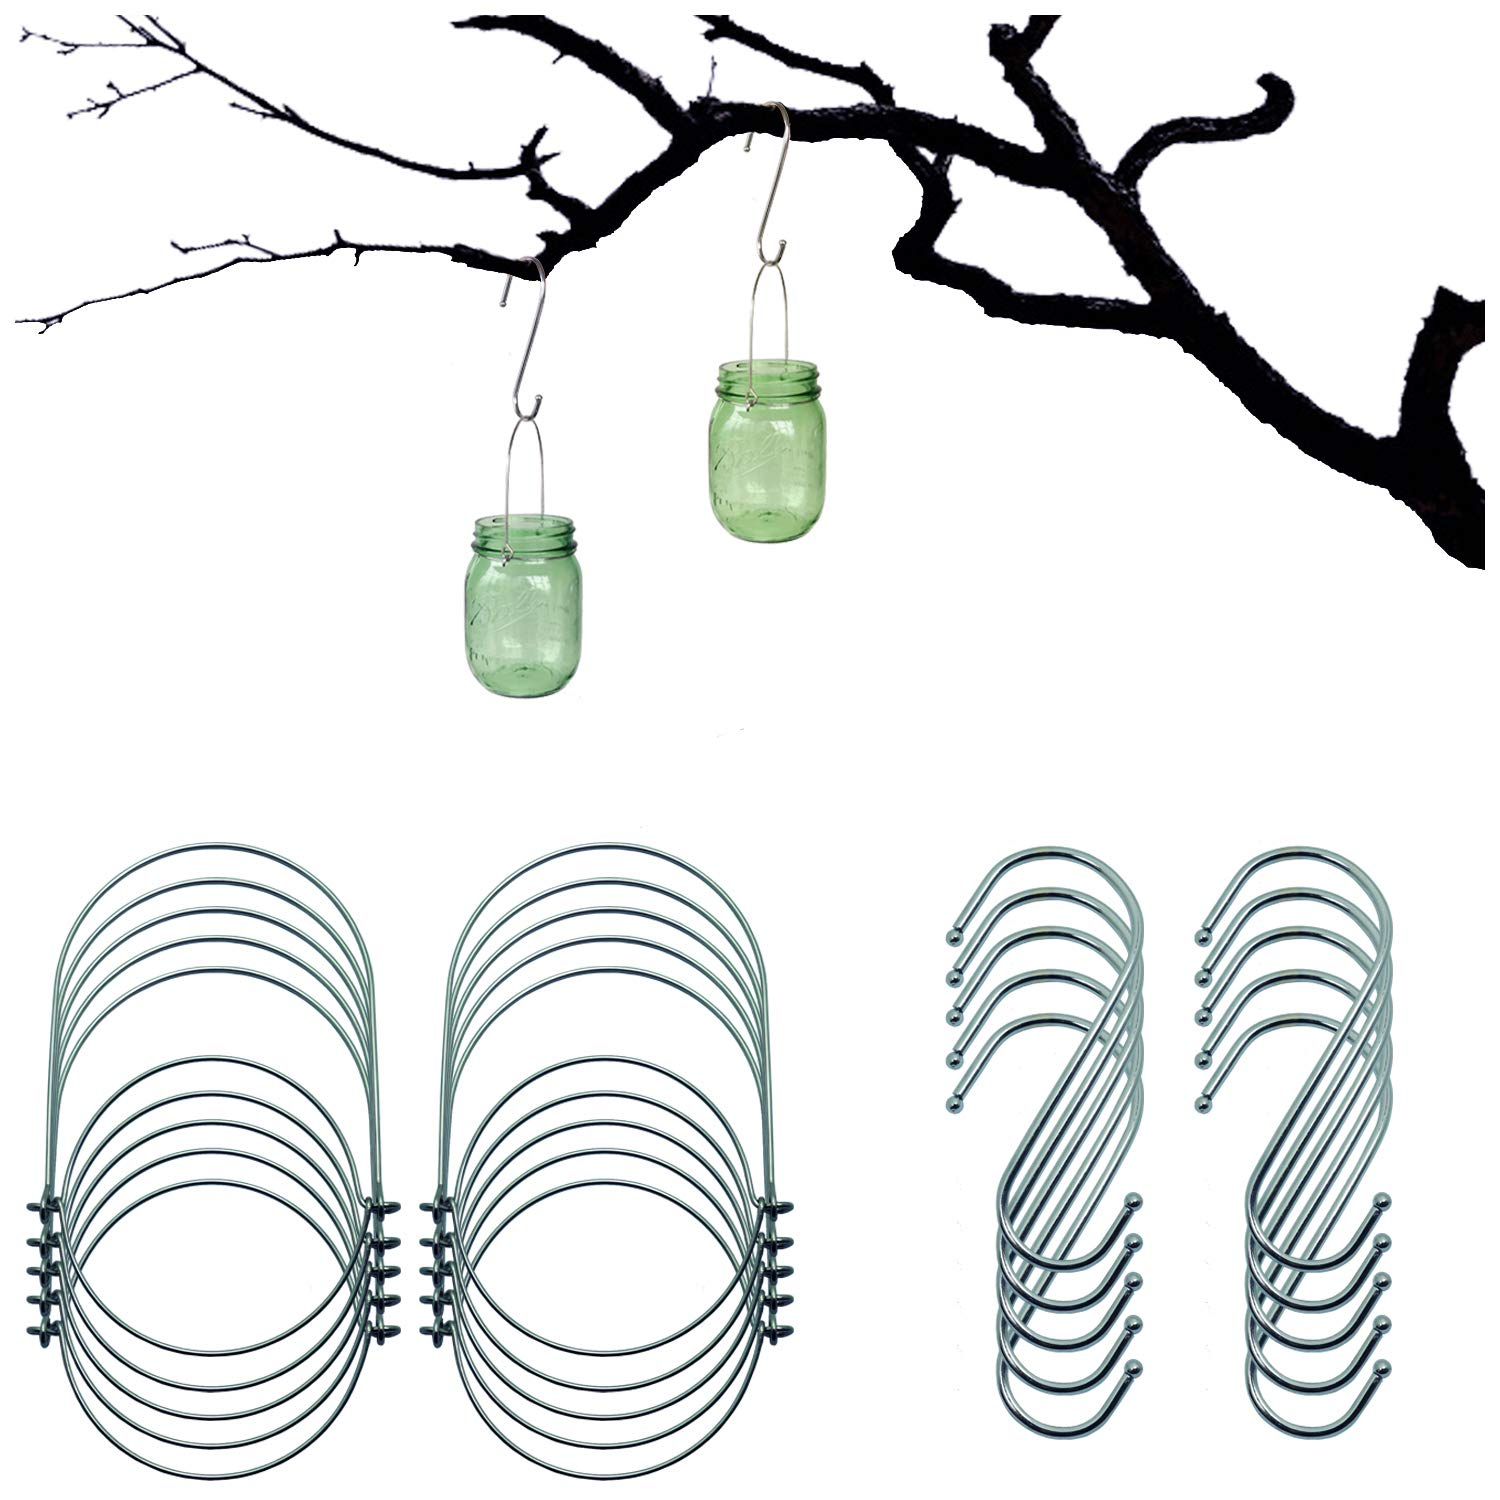 Mason Jar Wire Hangers (Handle-Ease),10 Pack Stainless Steel Handle Hangers and S Hooks for Hanging,Great for Regular Mouth Canning Jars,Solar Mason Jar Lights Lanterns (10Pack-Silver, Regular Mouth) by Aubasic